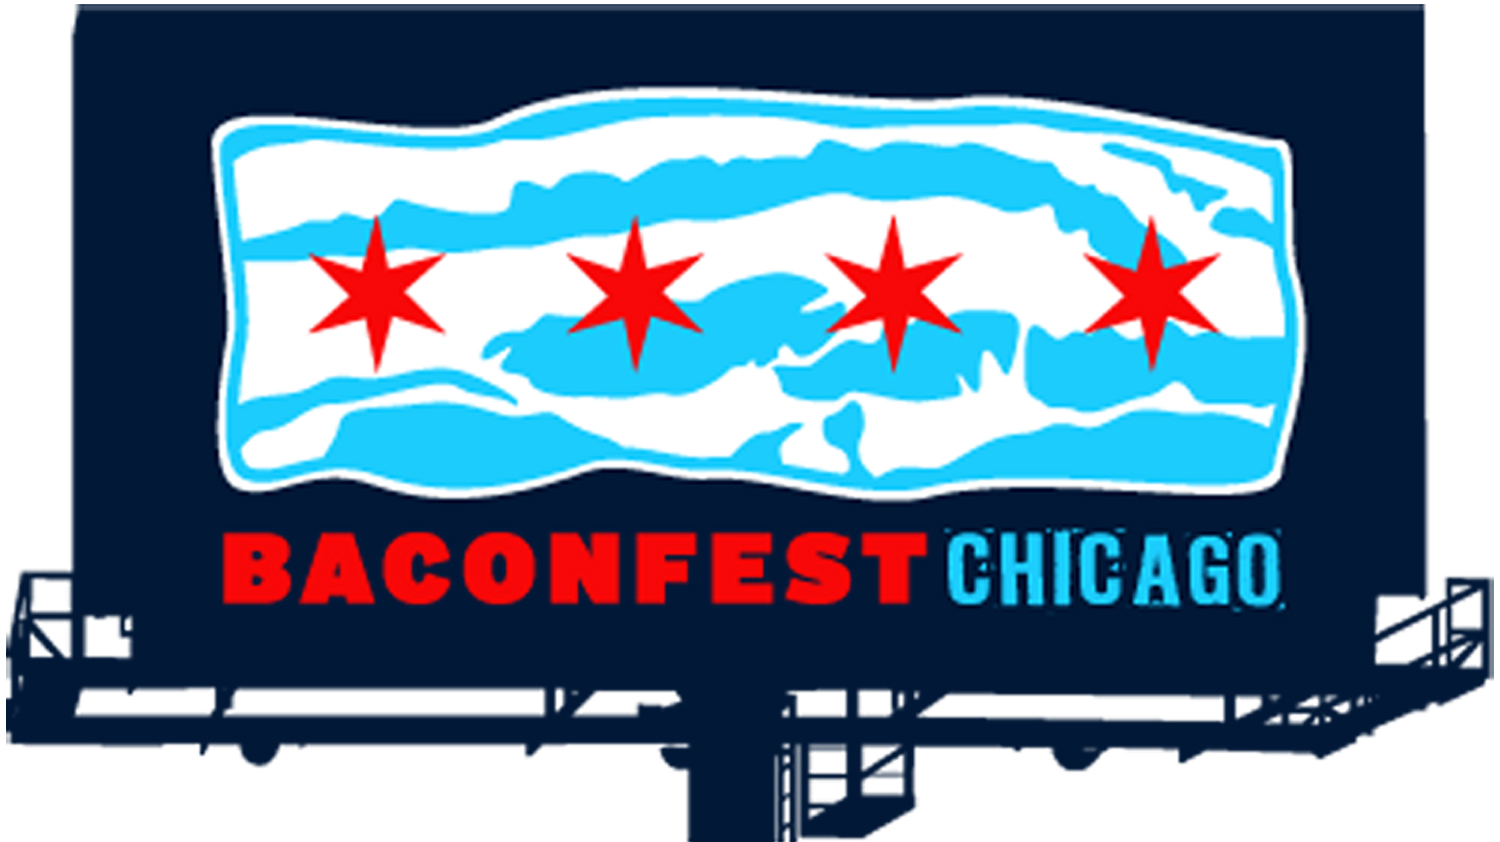 Baconfest Chicago: April 30 and May 1